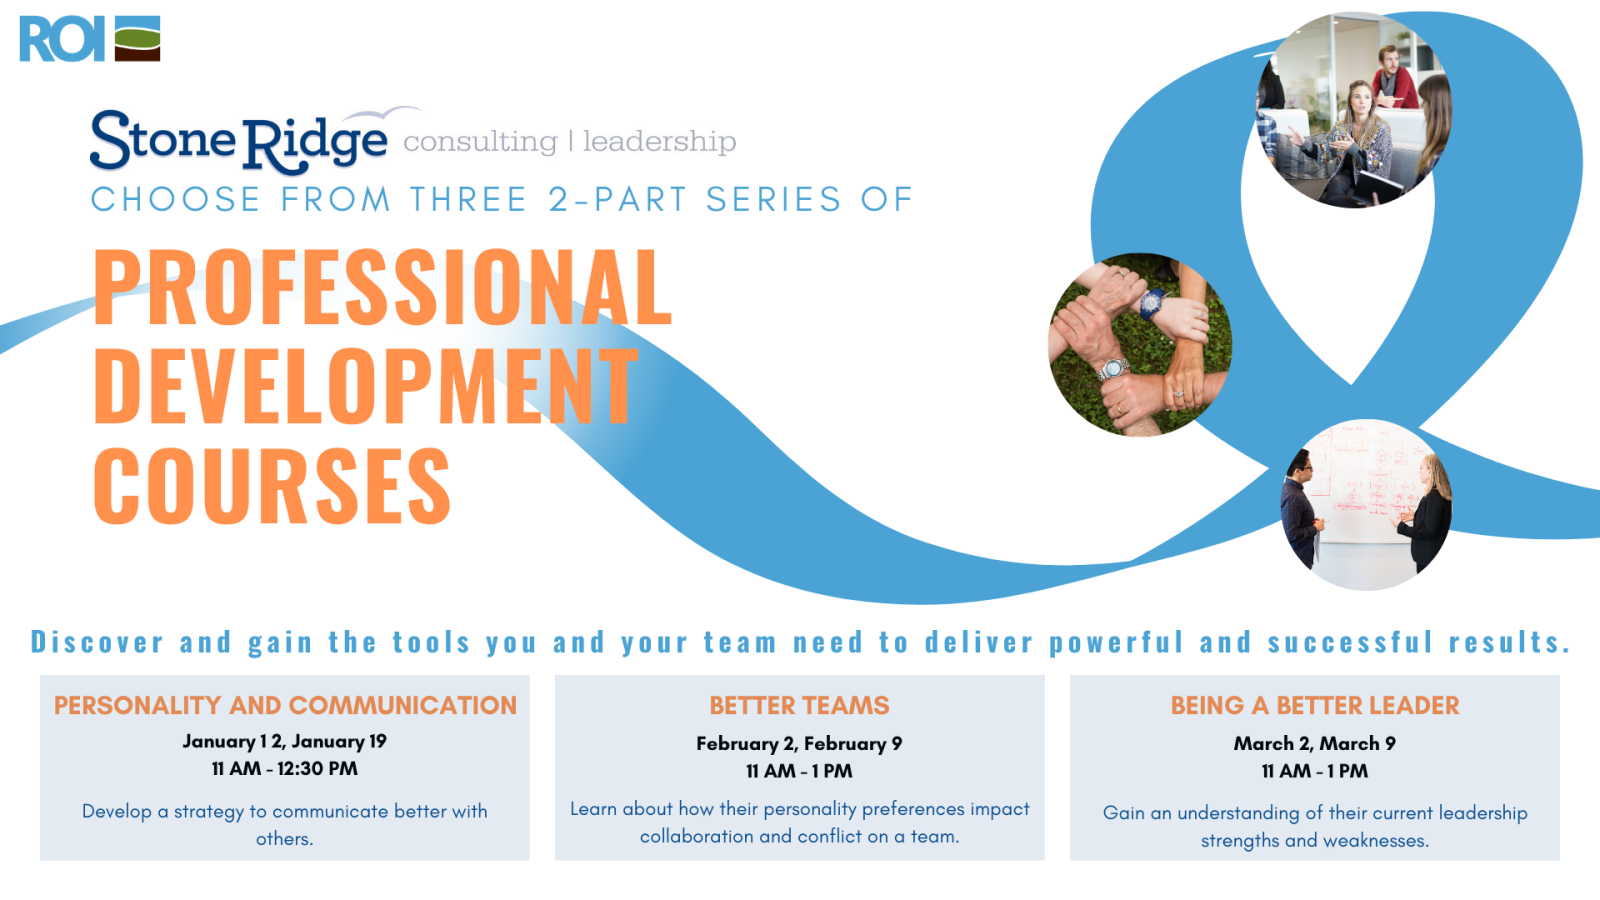 Introducing our new 3-part professional development training series coming January 2021